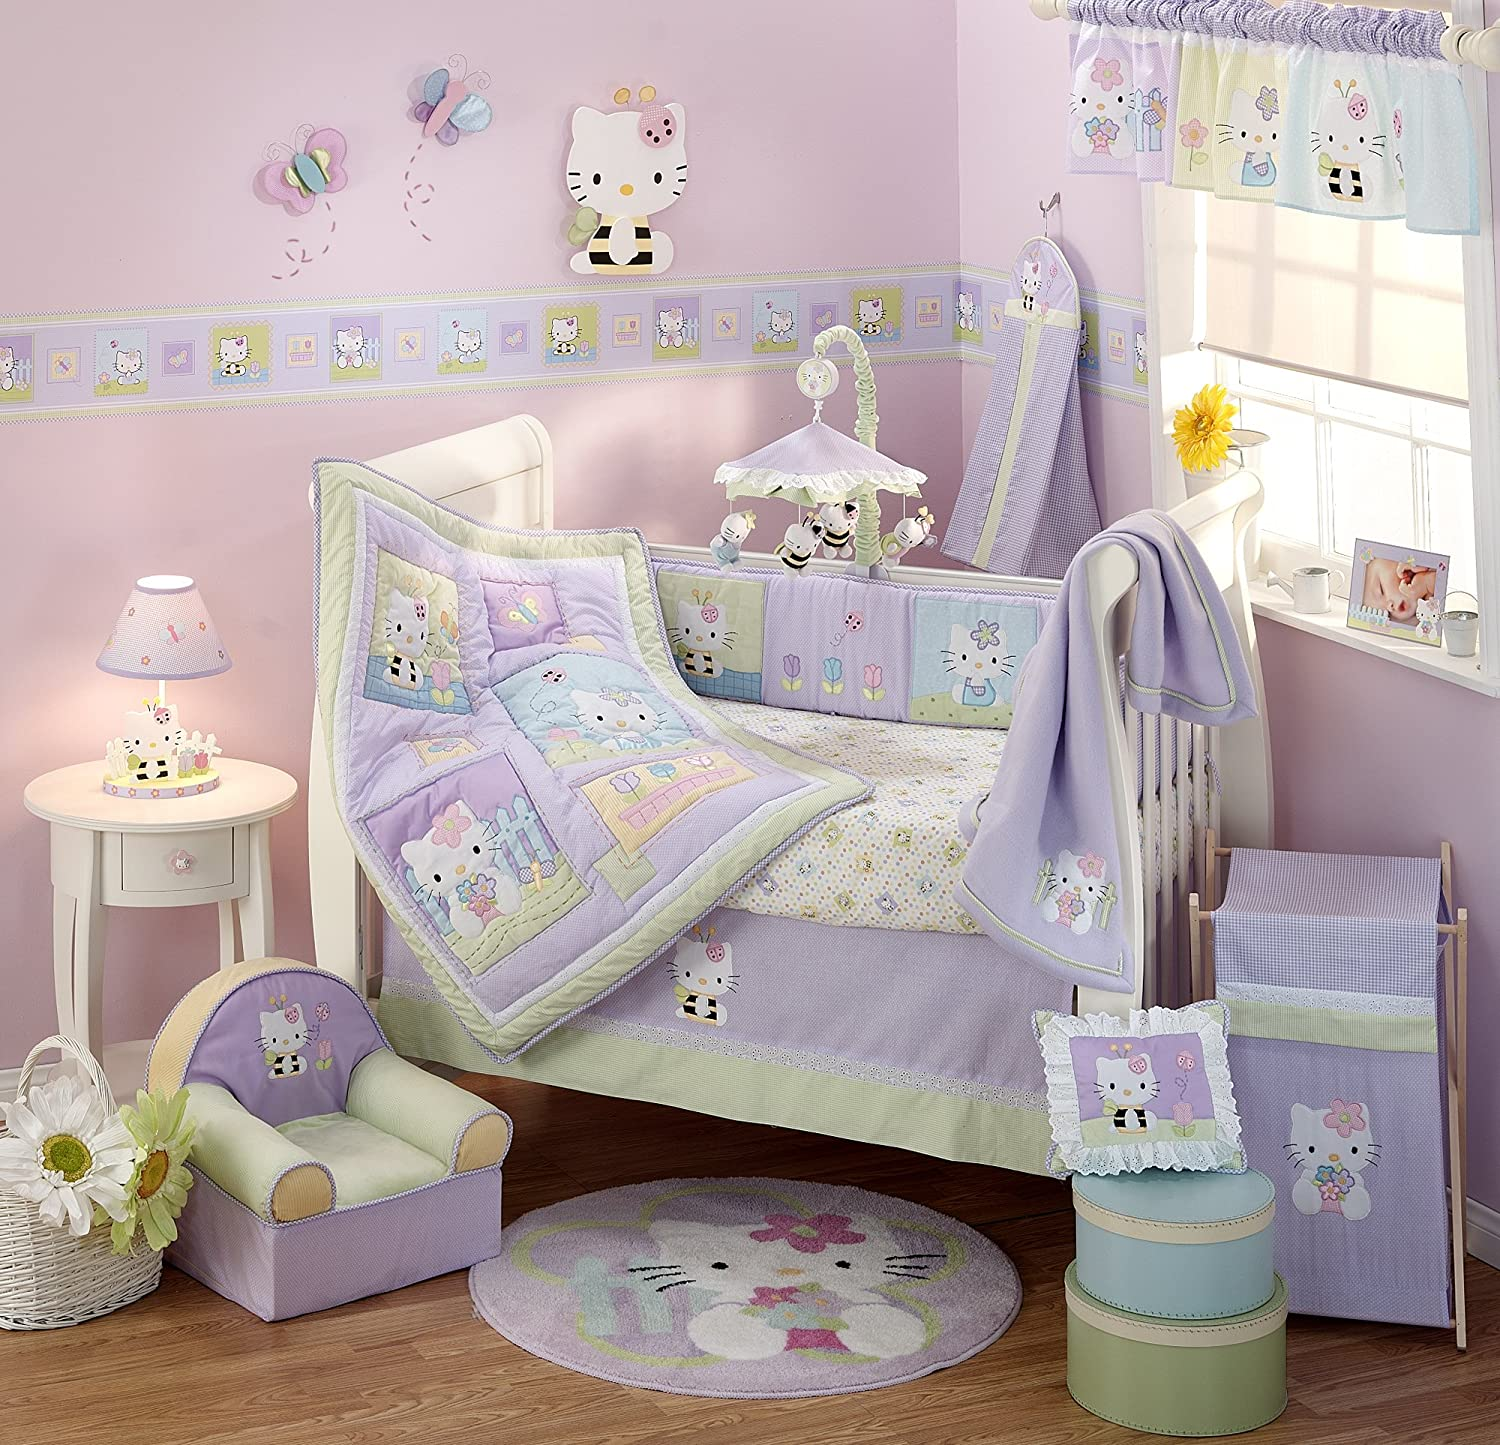 lambs and ivy hello kitty and friends baby bedding baby bedding and accessories. Black Bedroom Furniture Sets. Home Design Ideas